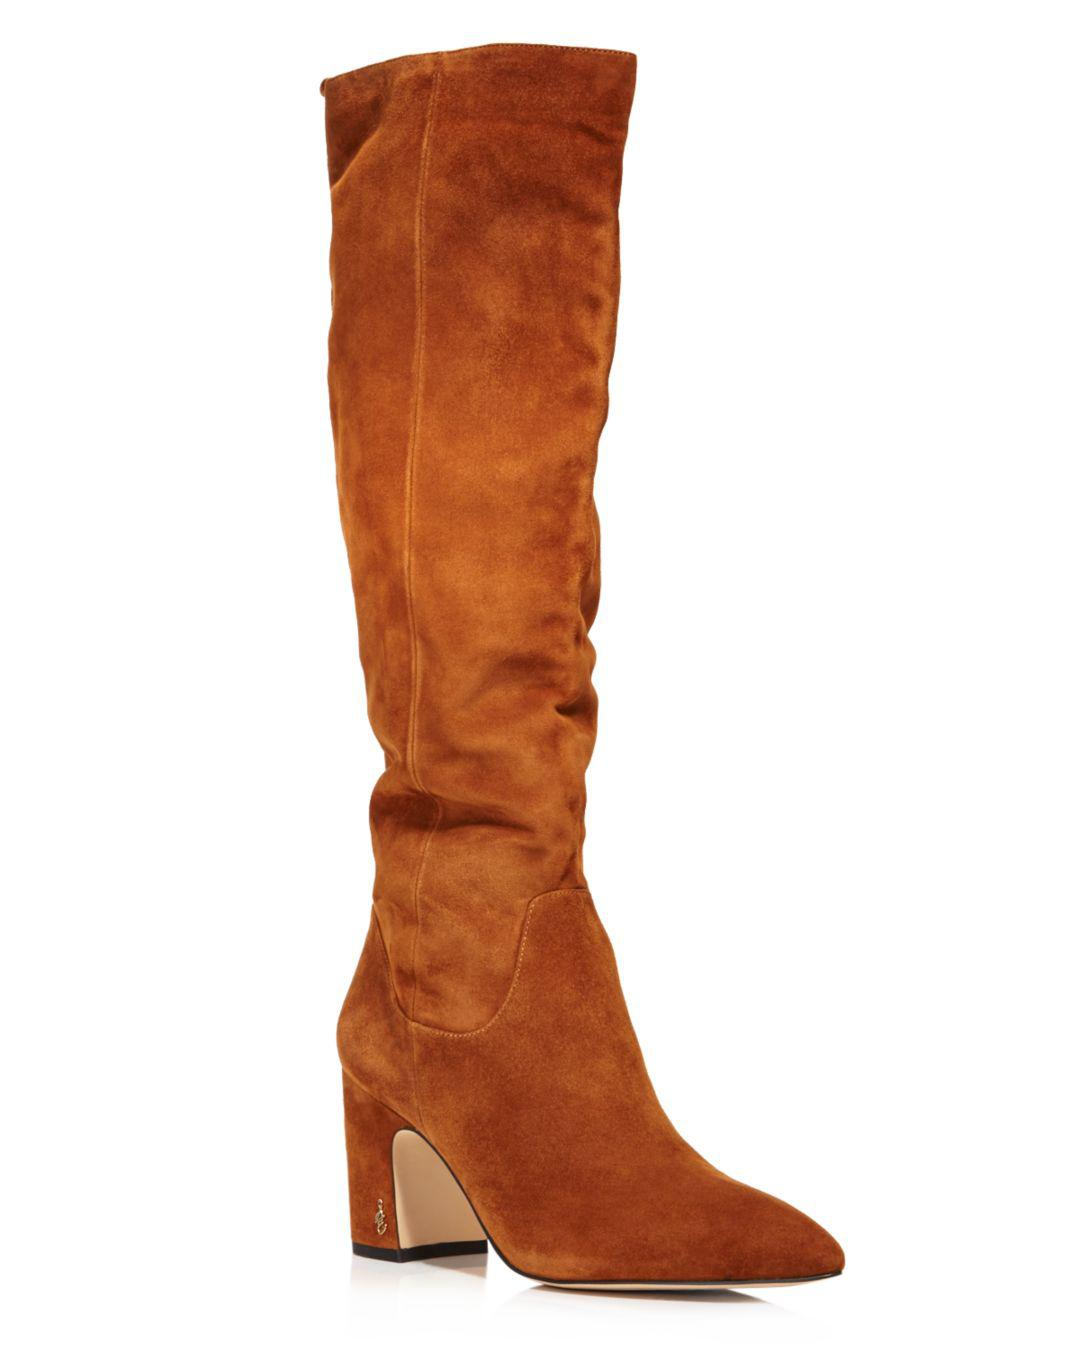 896df76875e Sam Edelman Women s Hai Suede Tall Boots in Brown - Lyst